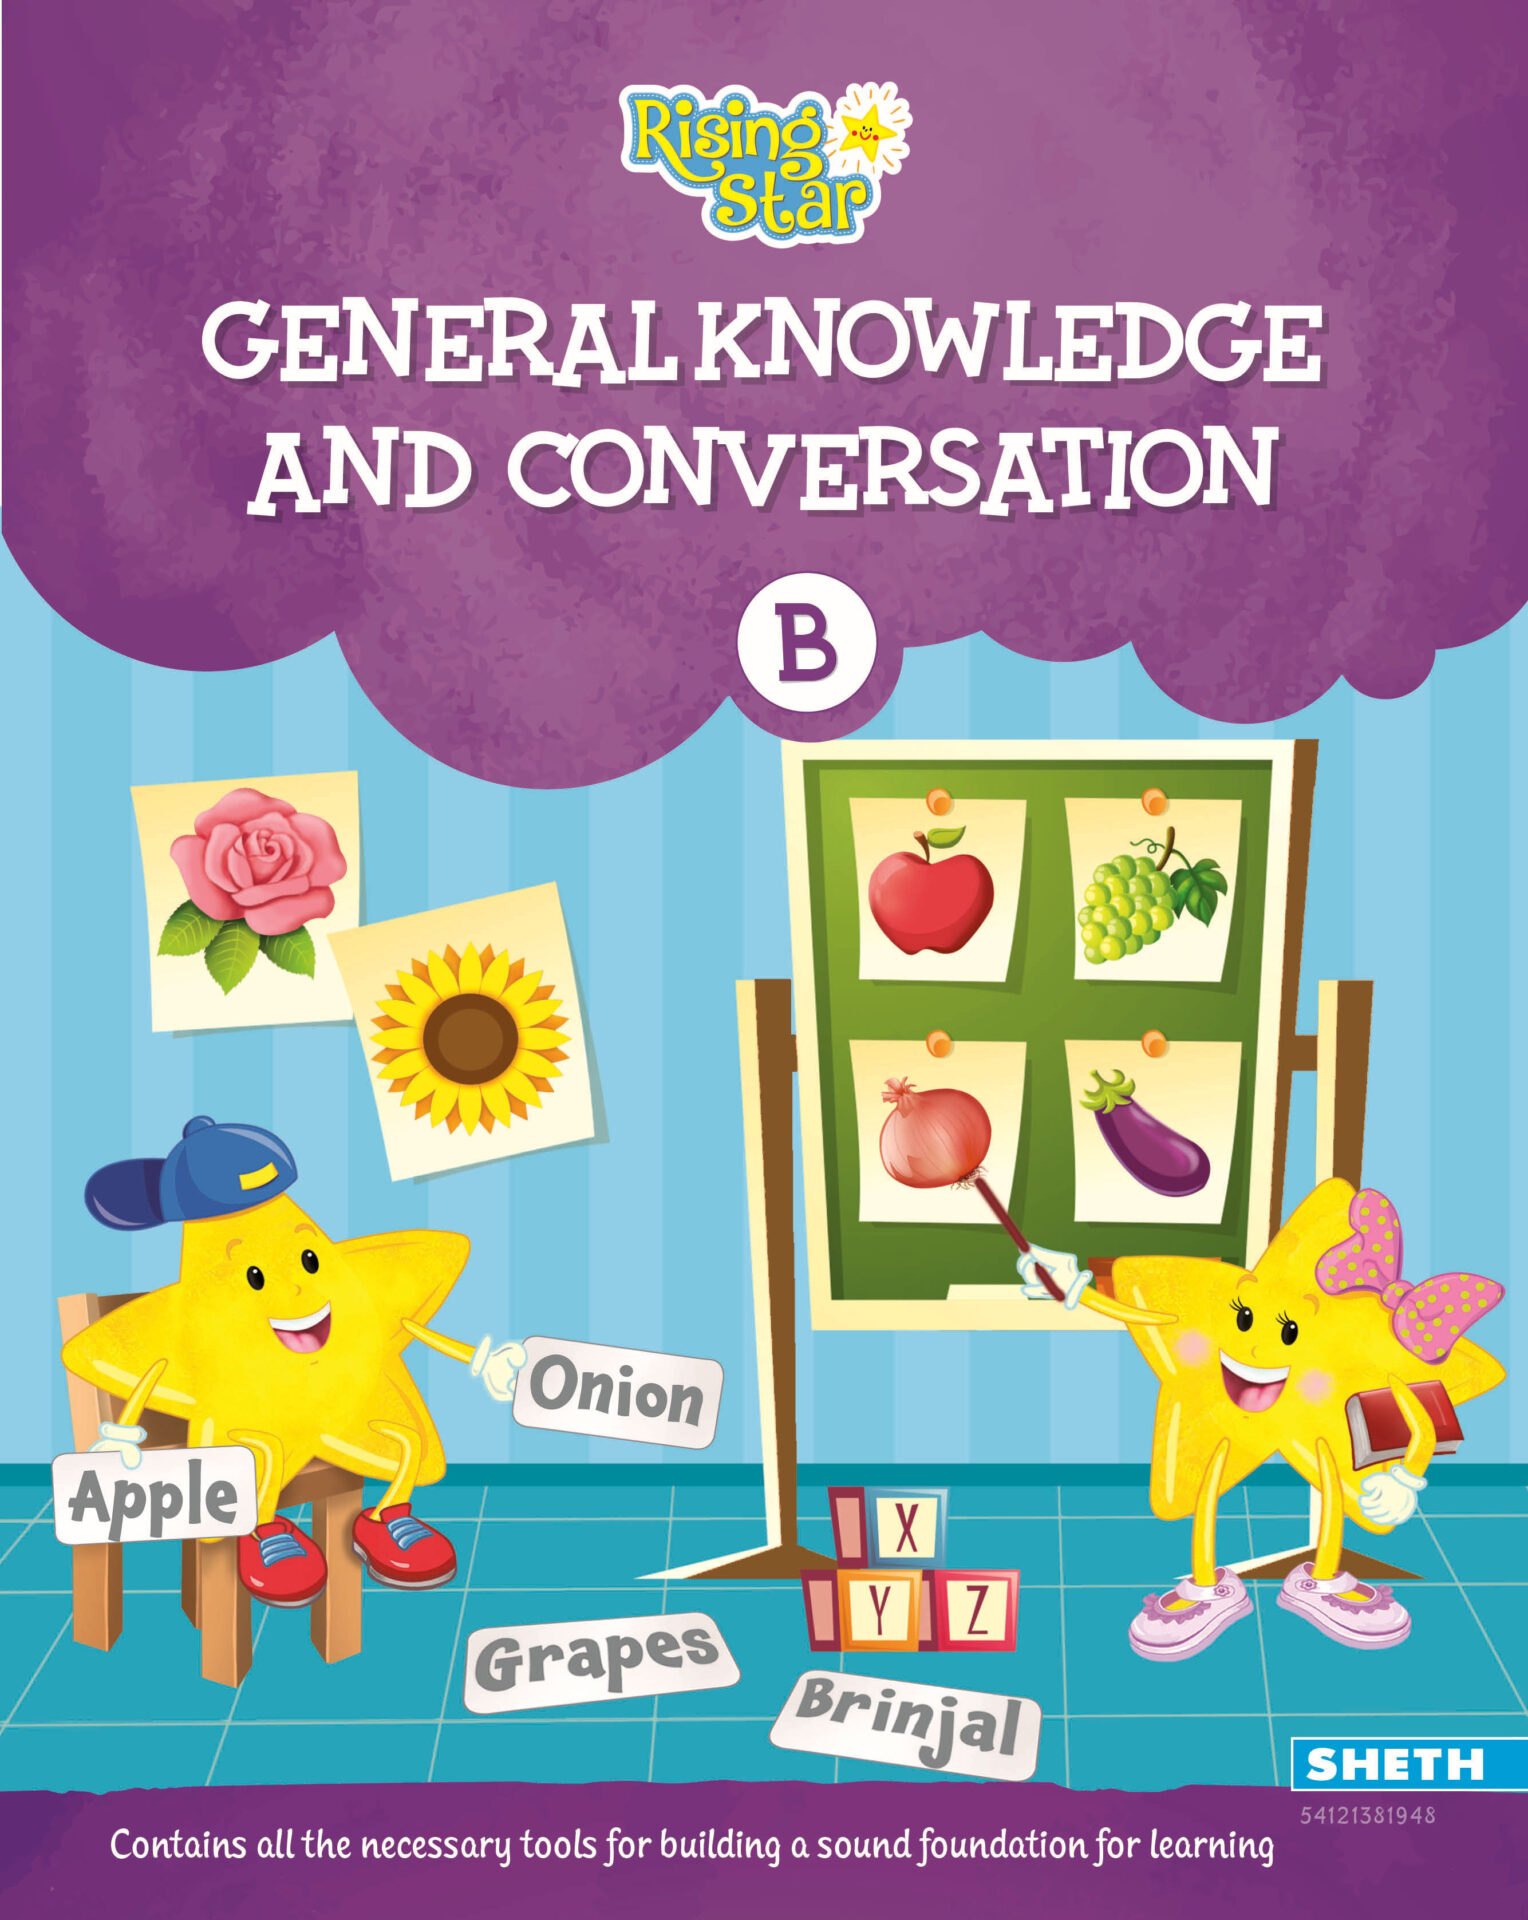 Rising Star General Knowledge and Conversation B 1 1